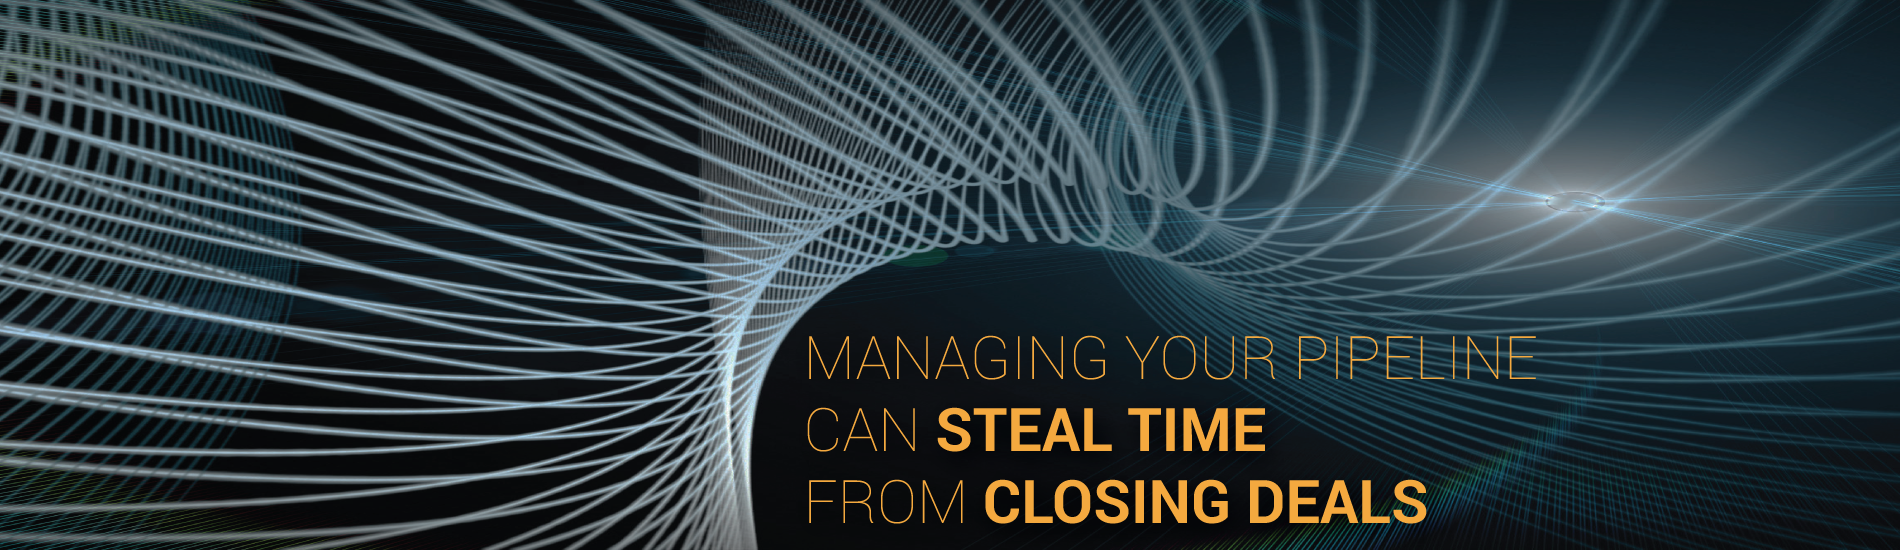 Managing Your Pipeline Can STEAL TIME from Closing Deals